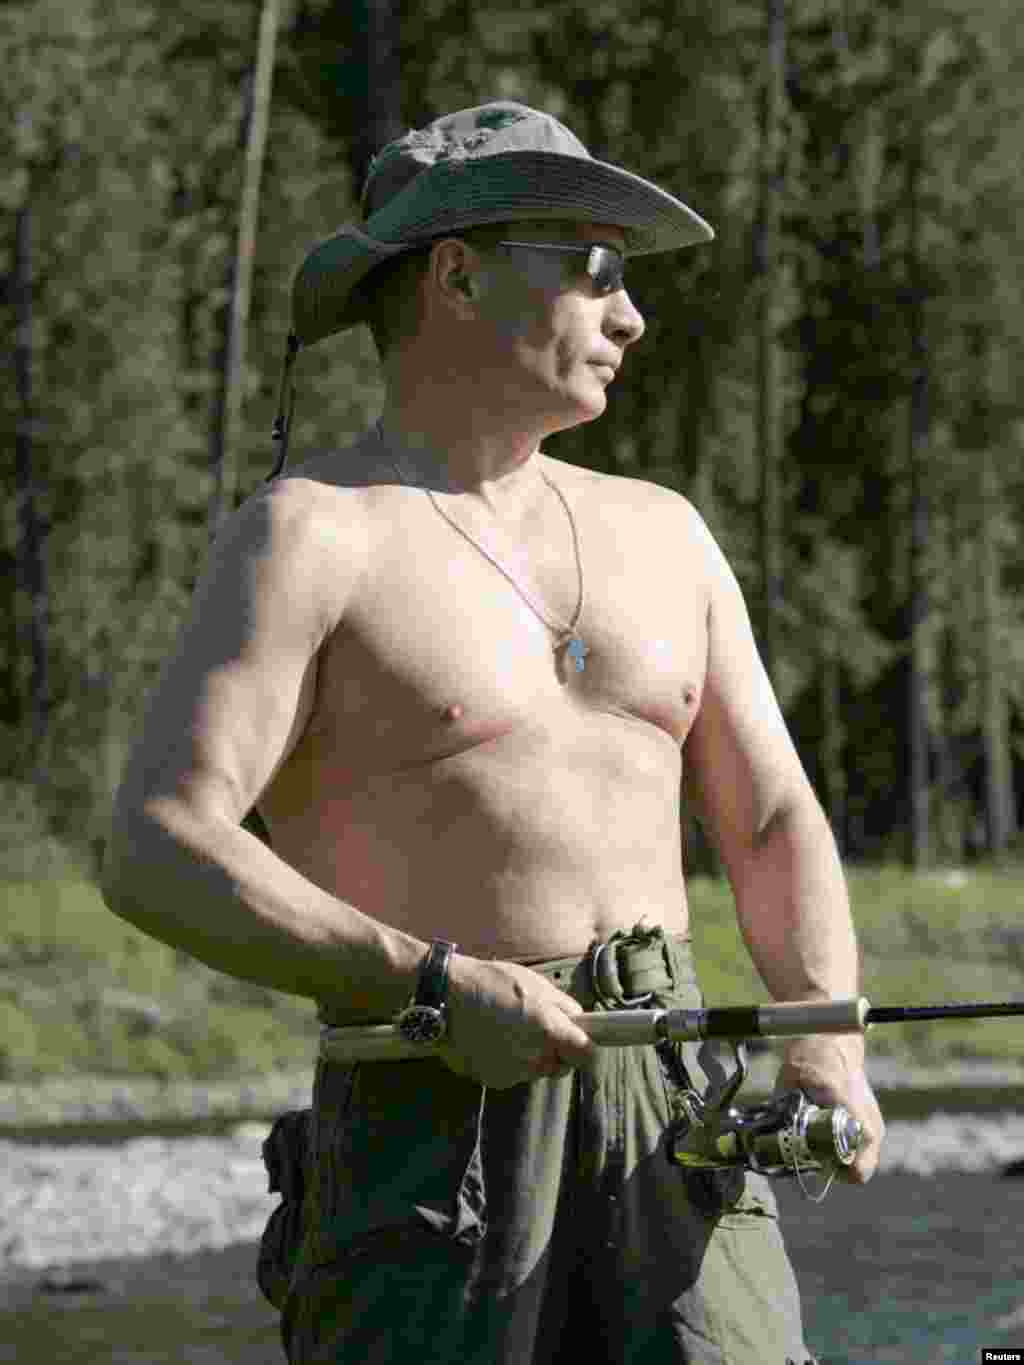 Russia's President Vladimir Putin fishes in the Yenisei River in Siberia as he makes a tour together with Prince Albert II of Monaco, August 13, 2007. REUTERS/RIA Novosti/KREMLIN